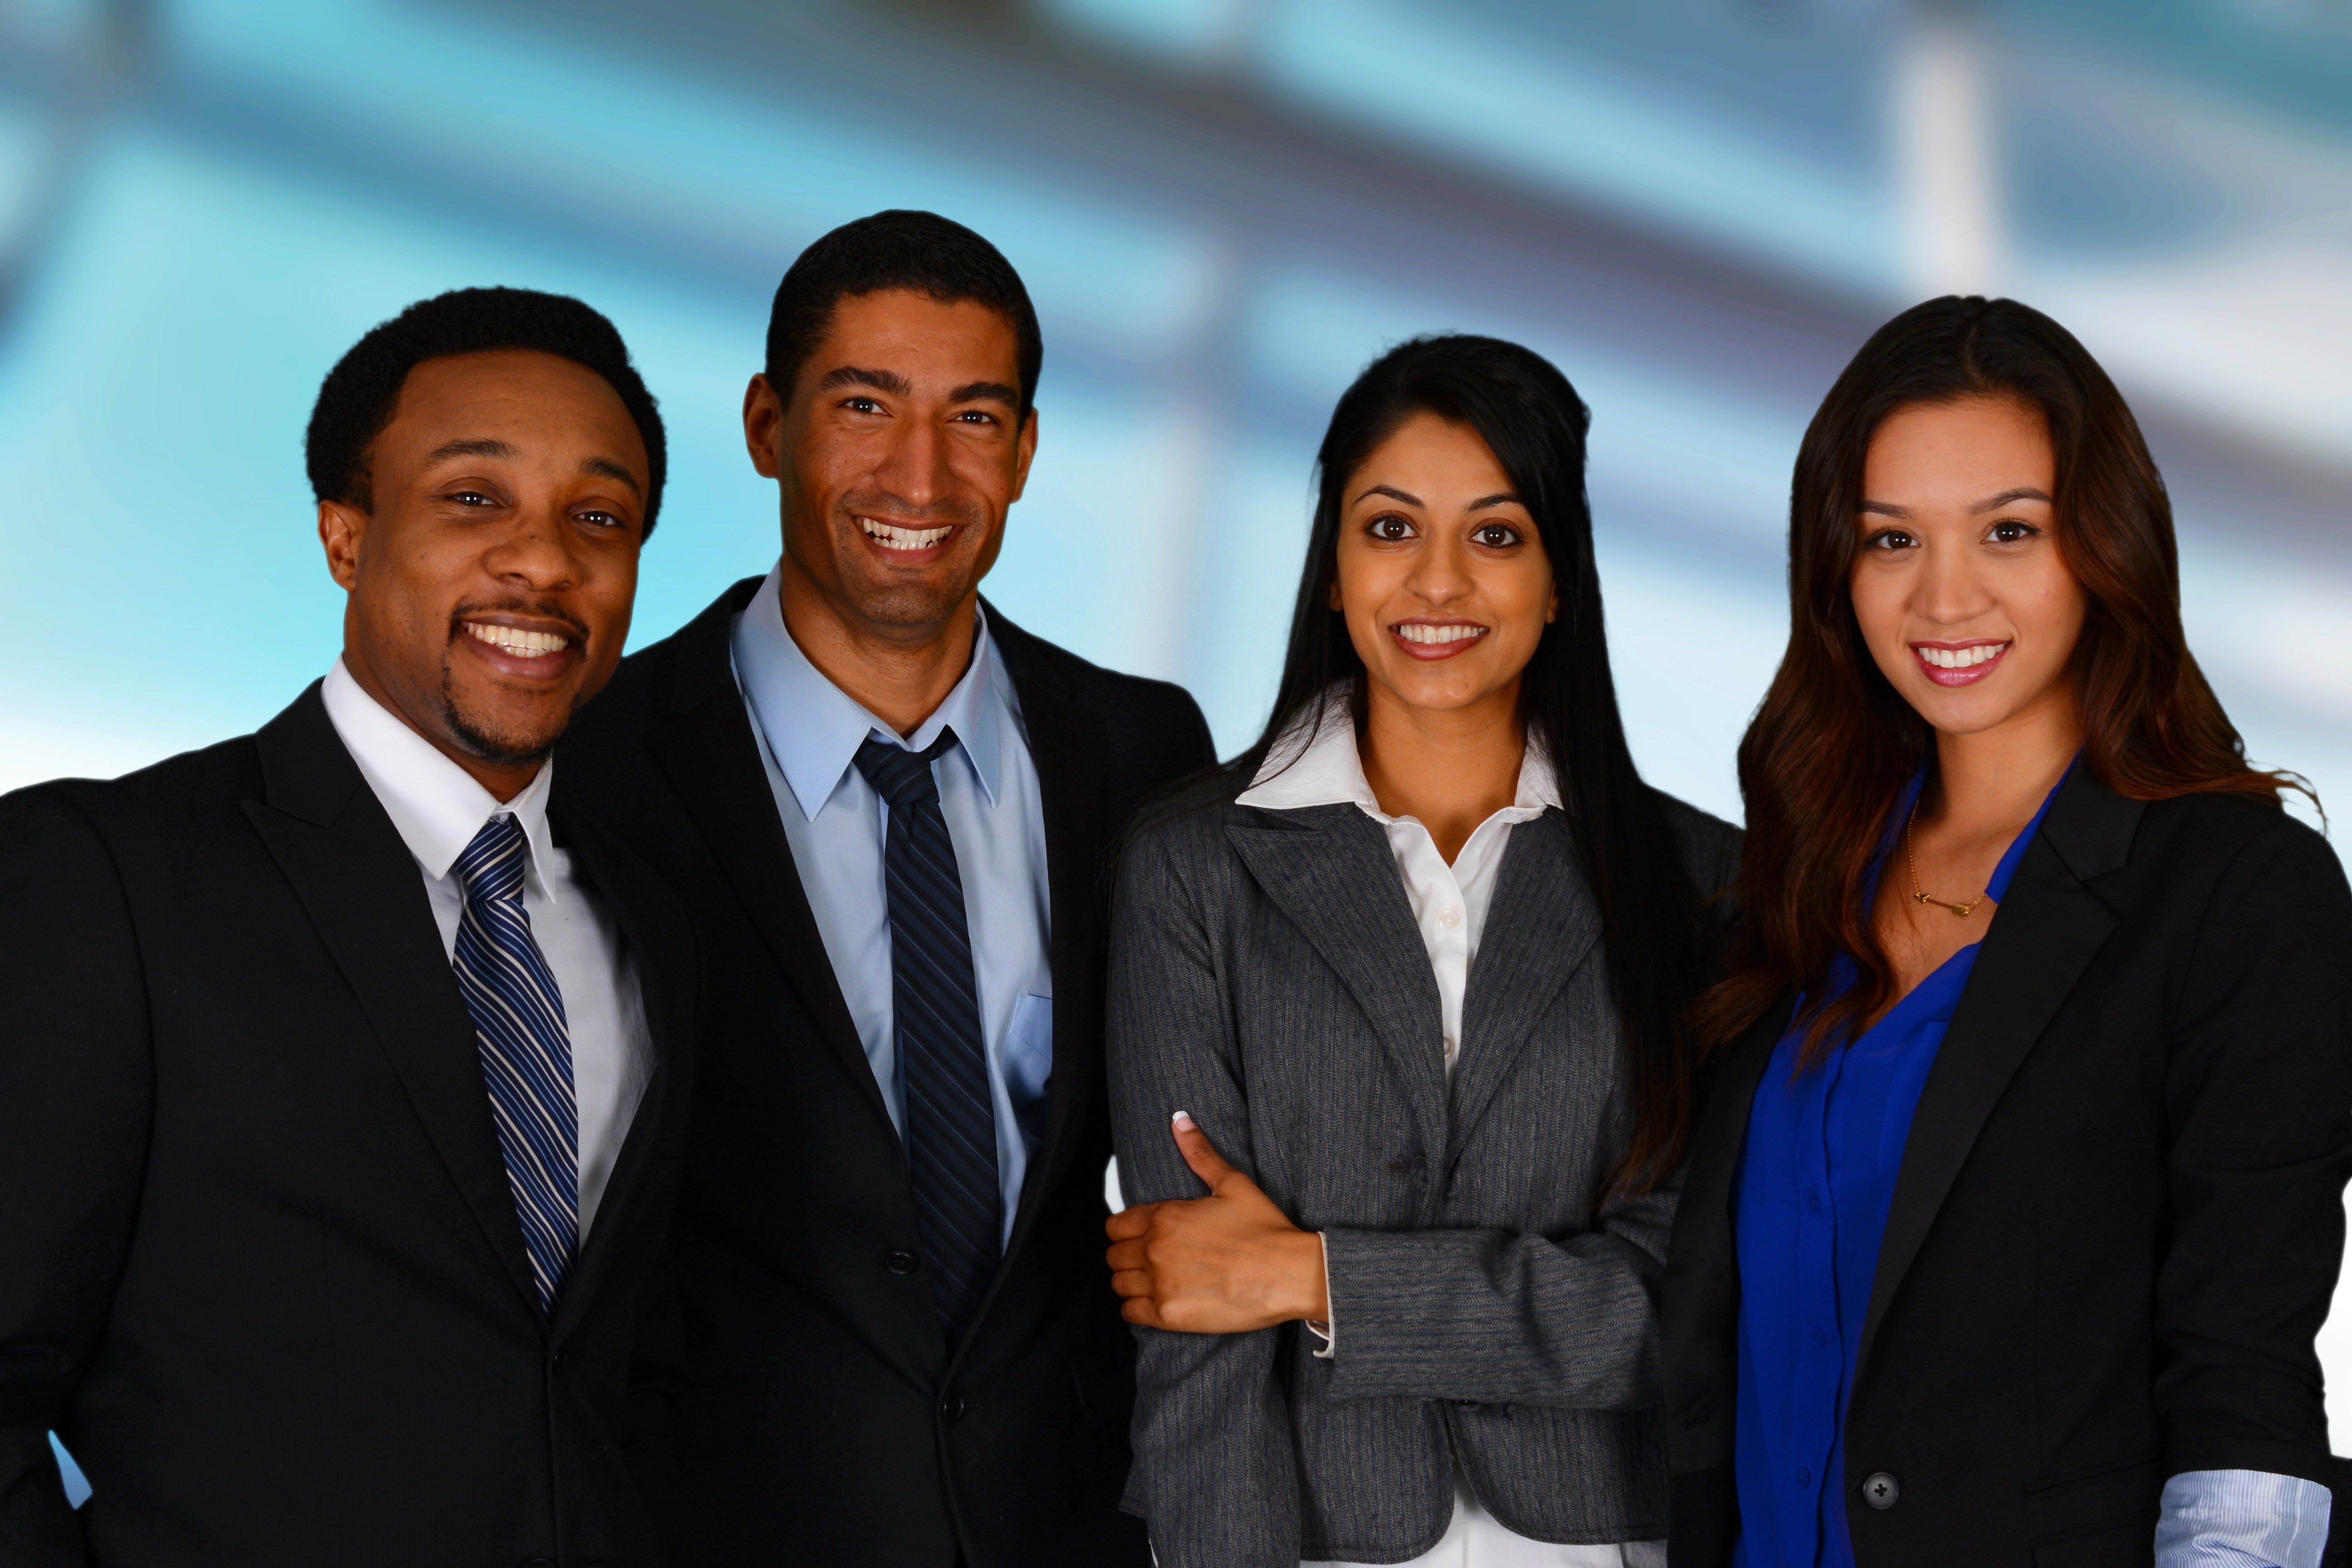 Minority and Women-Owned Businesses